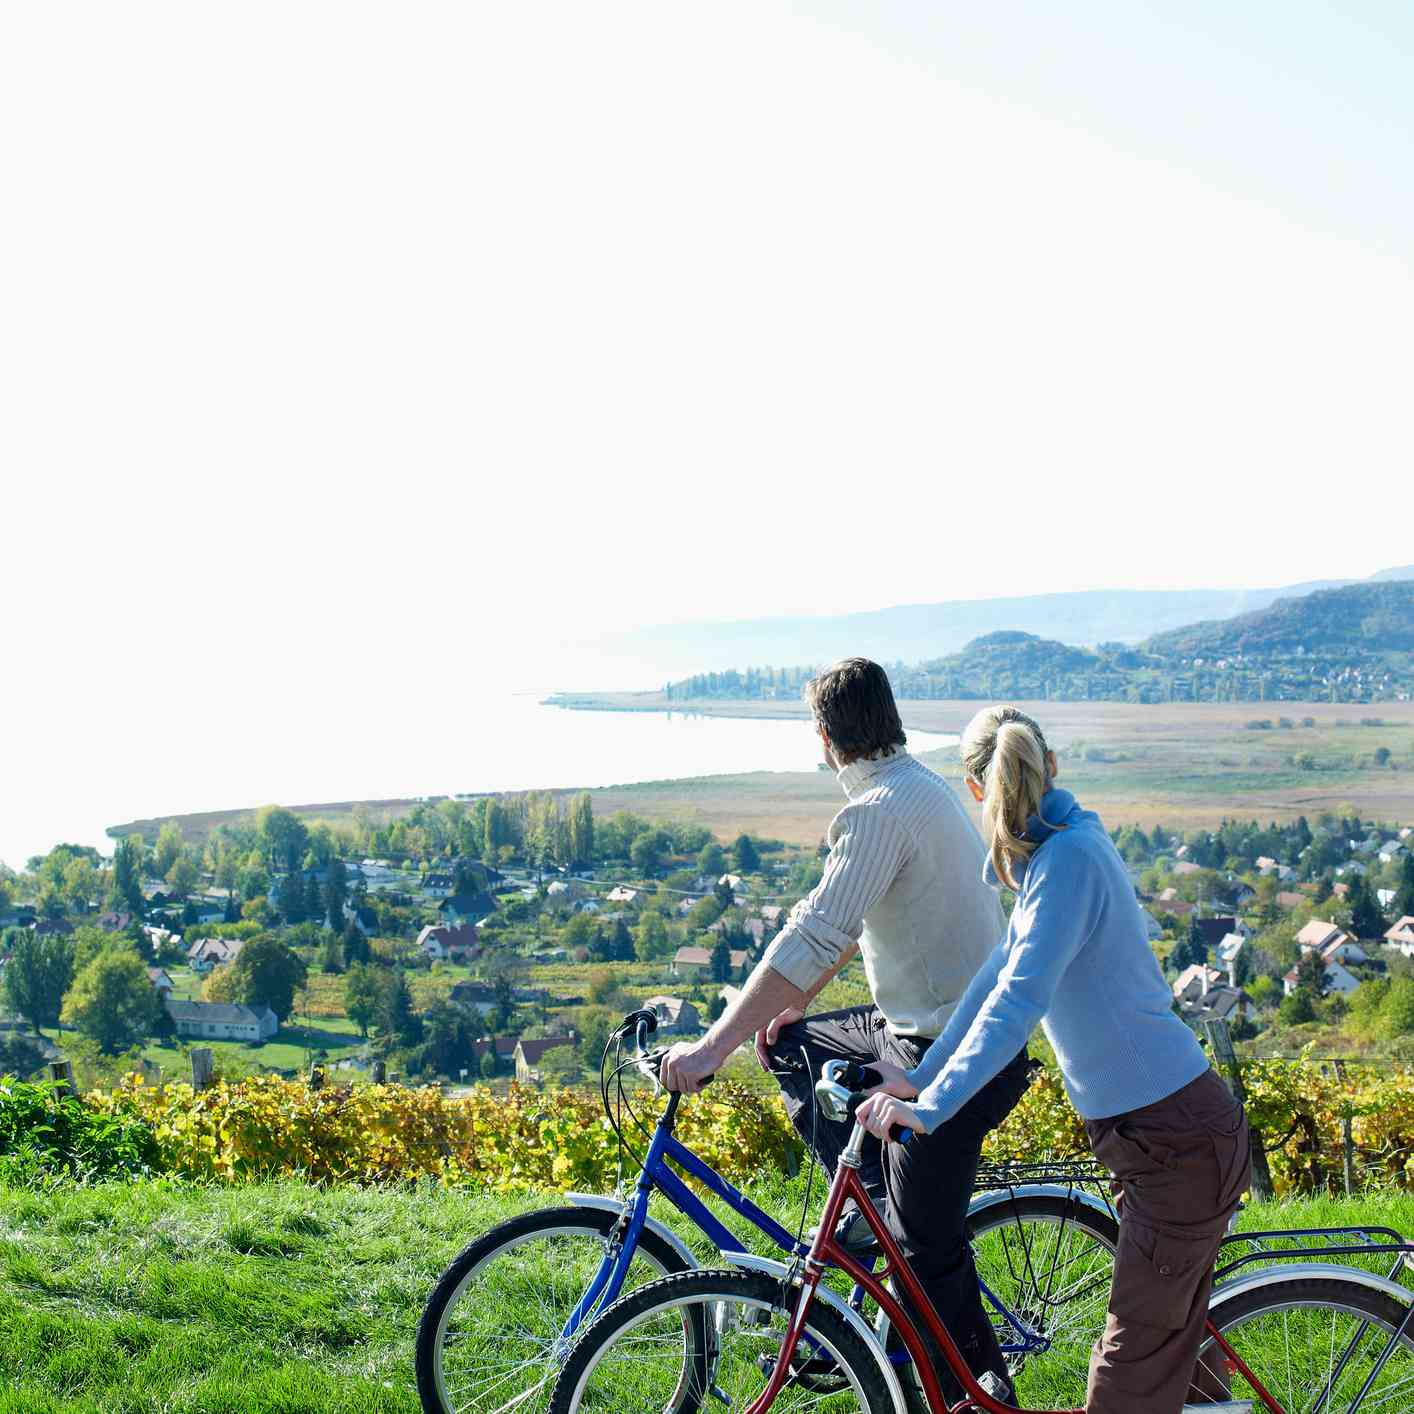 Cycling couple looking out over elevated view of vineyards and Lake Balaton, Budapest, Hungary